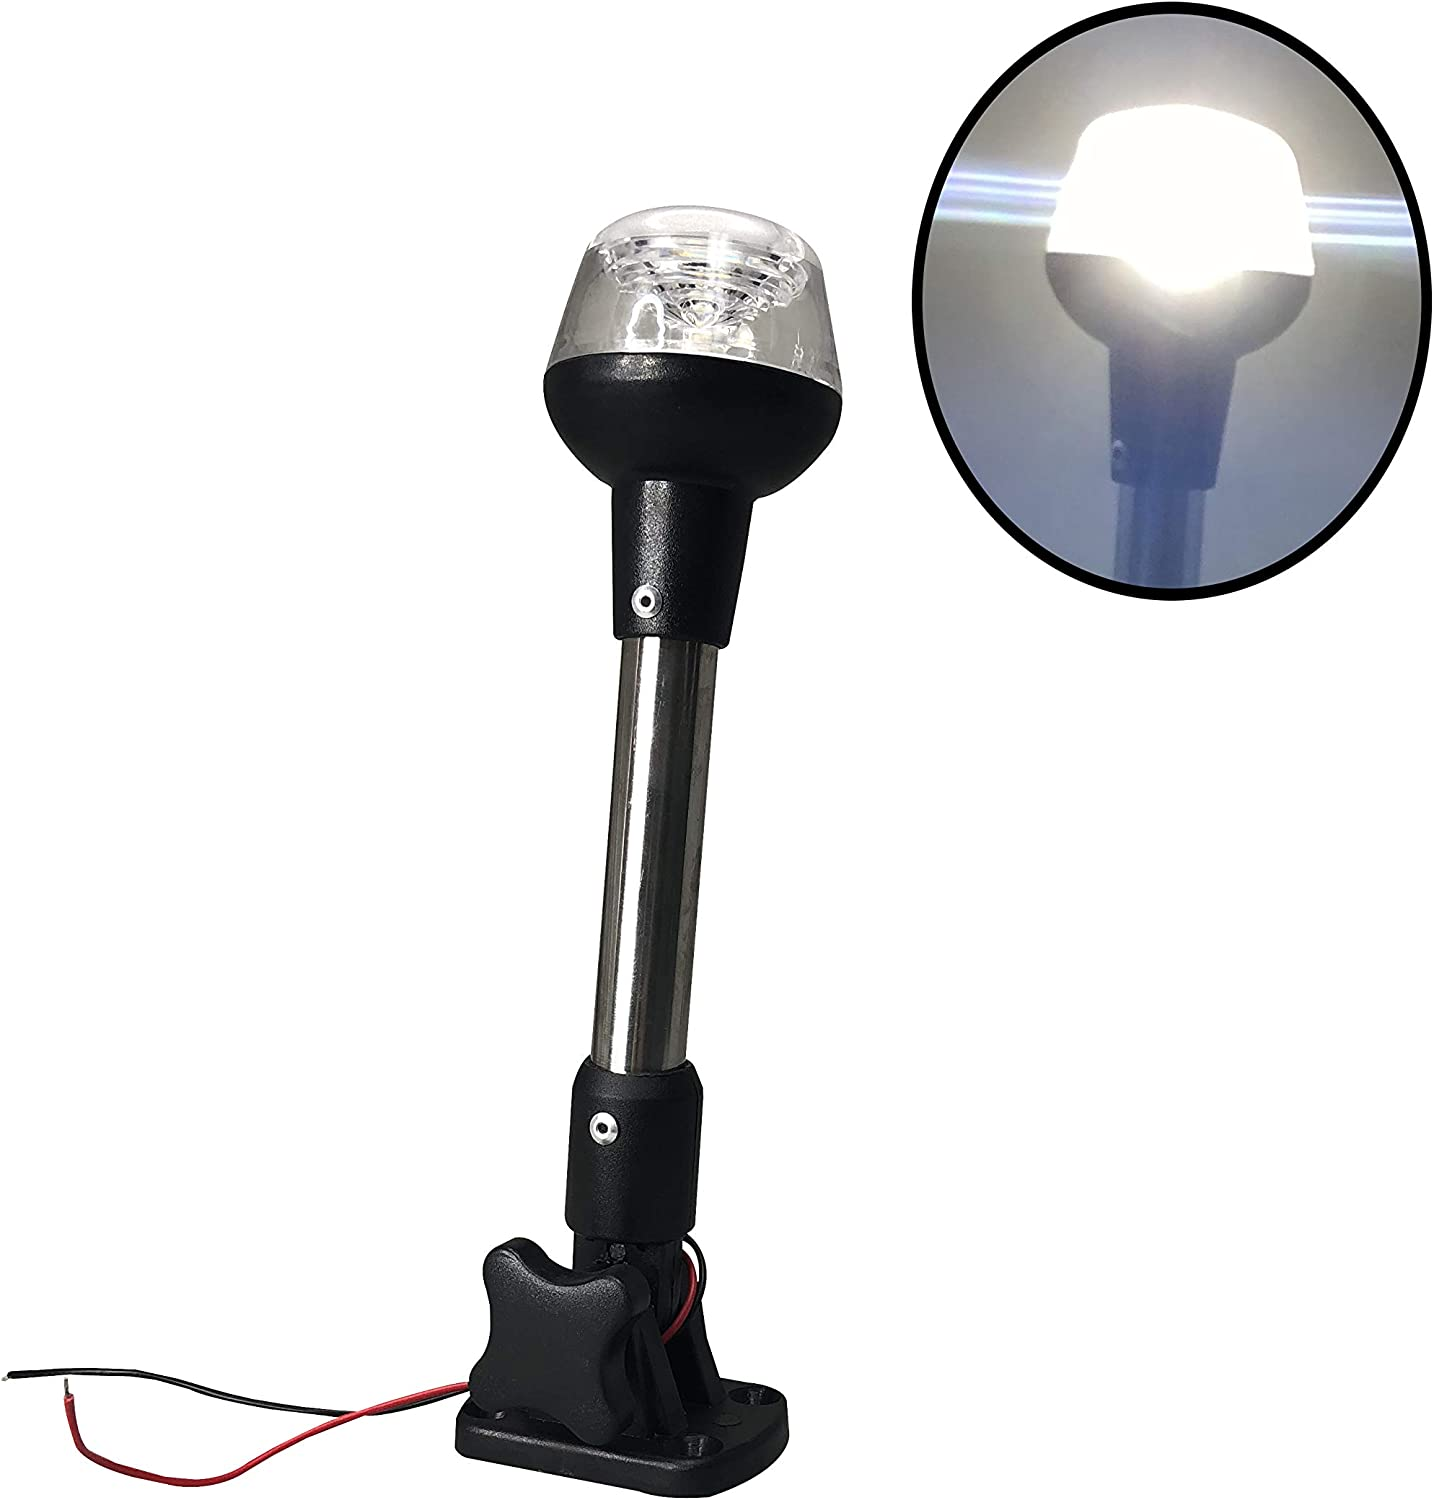 Pactrade Marine Adjustable Folding All Max 68% OFF Pole Max 81% OFF Round Light LED Navi